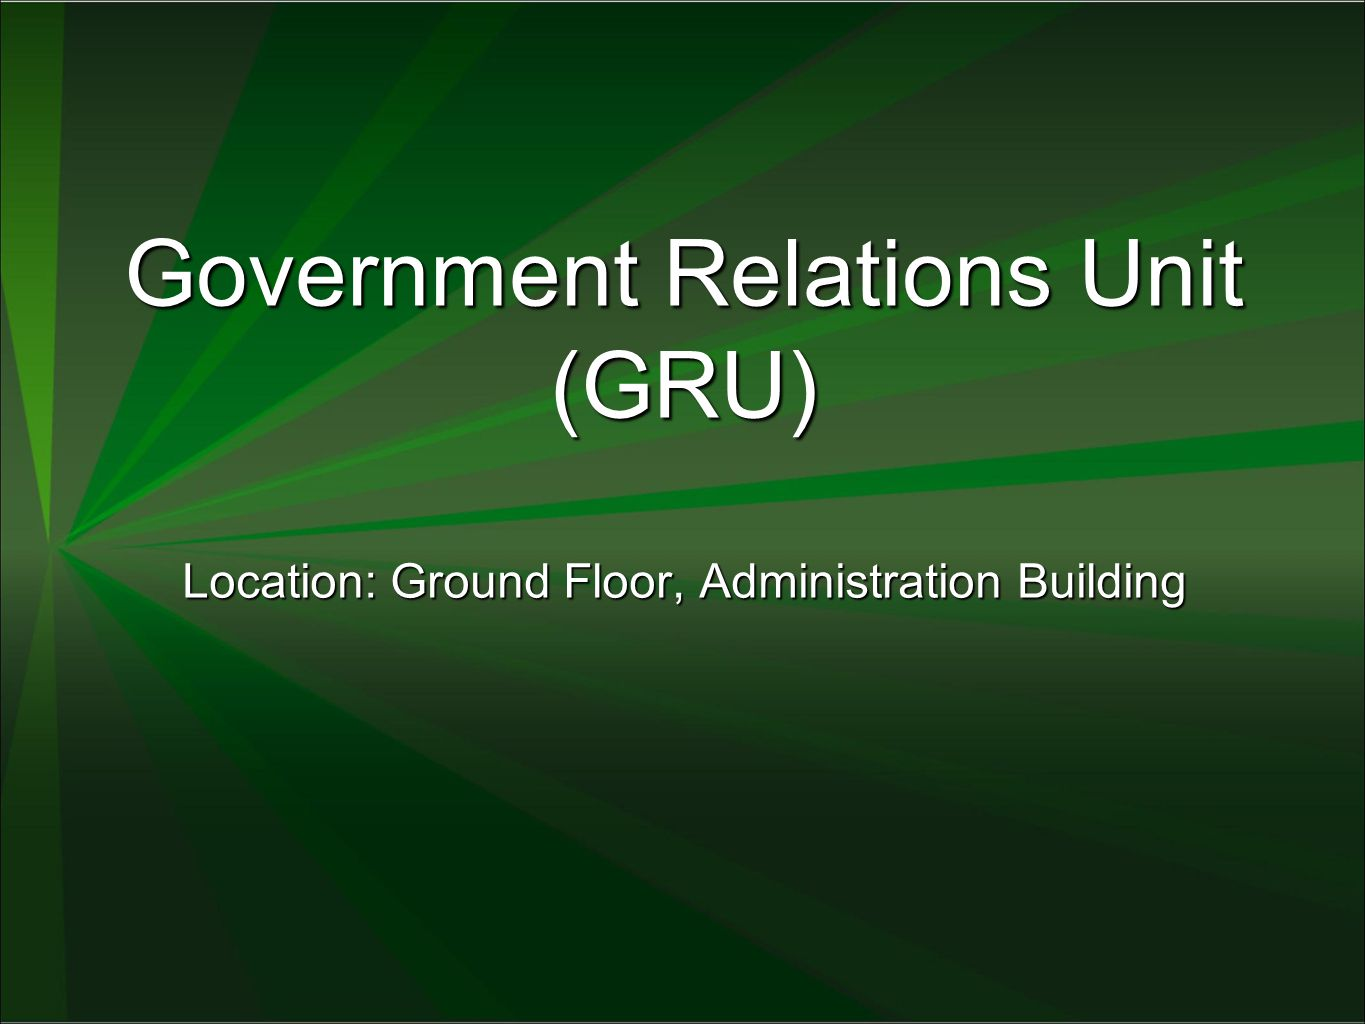 Government Relations Unit (GRU)